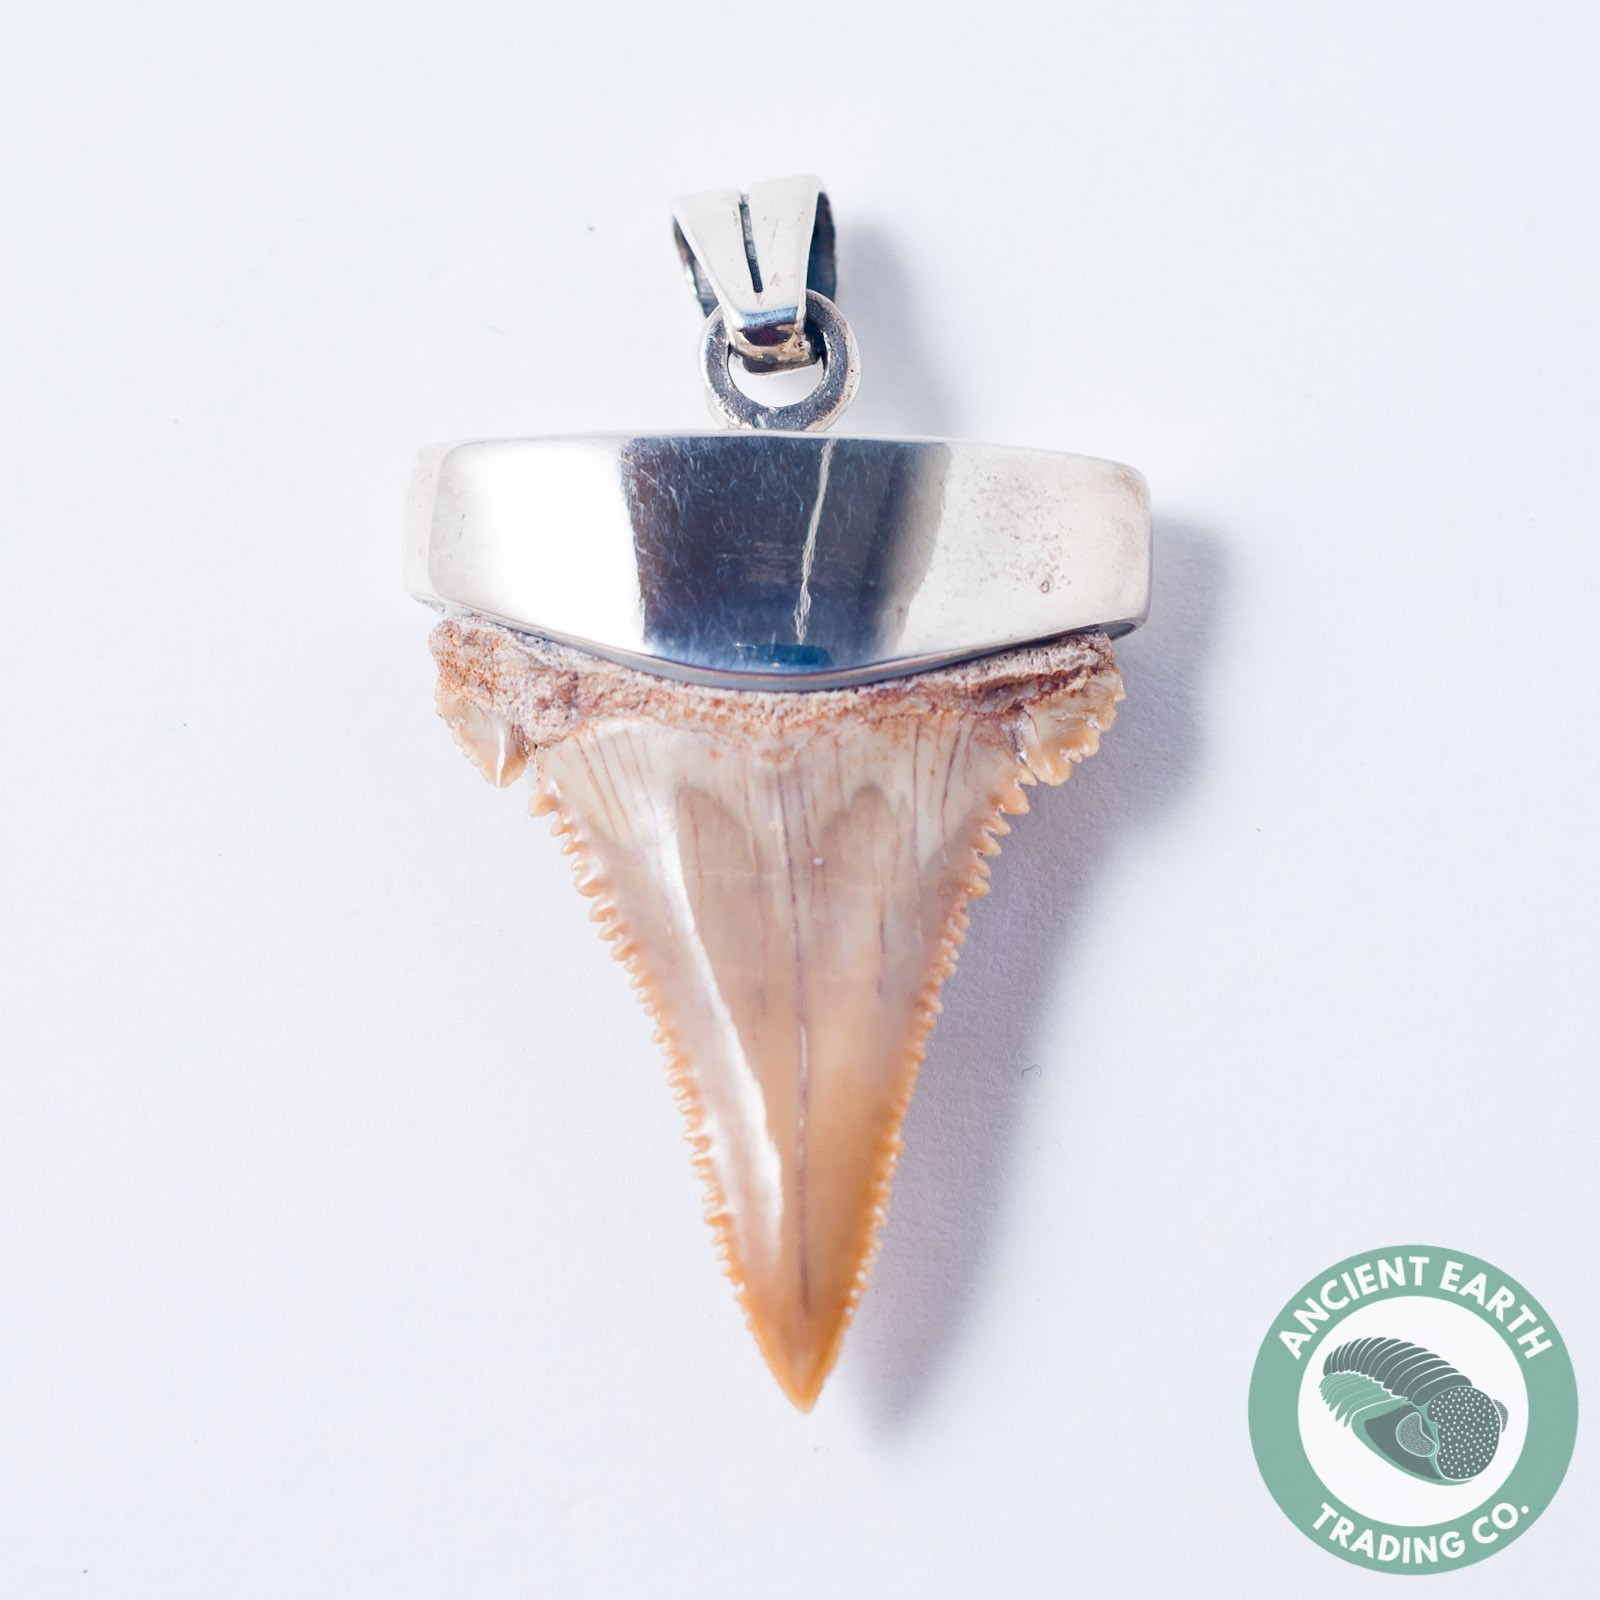 38 mm Fossil Palaeocarcharodon Pygmy Great White Shark Tooth Silver Pendant from Morocco